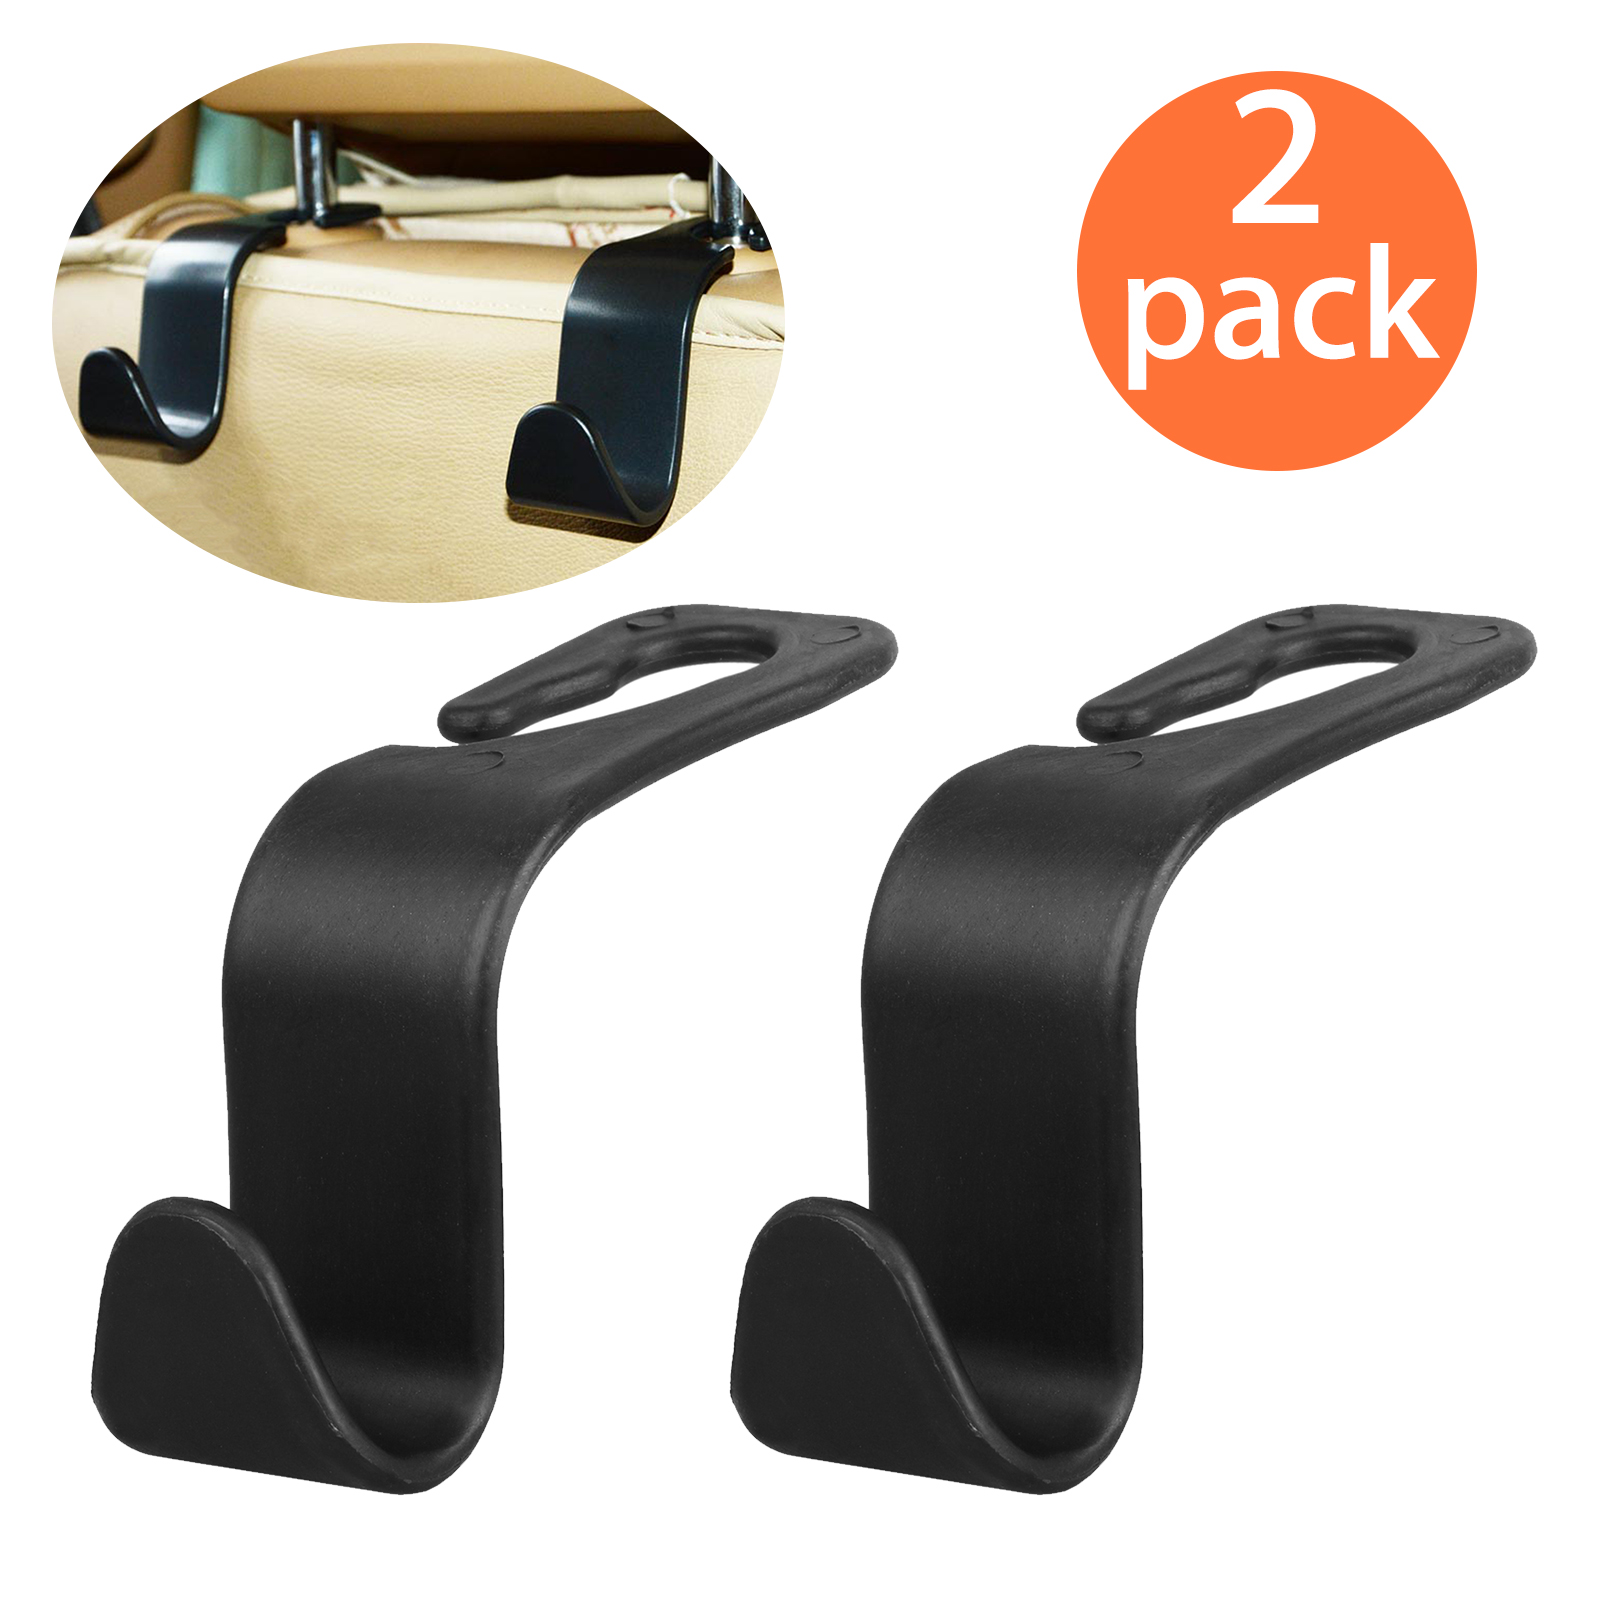 1Pcs Universal Car Hanger Bag Organizer Hook Seat Headrest Holder For Groceries